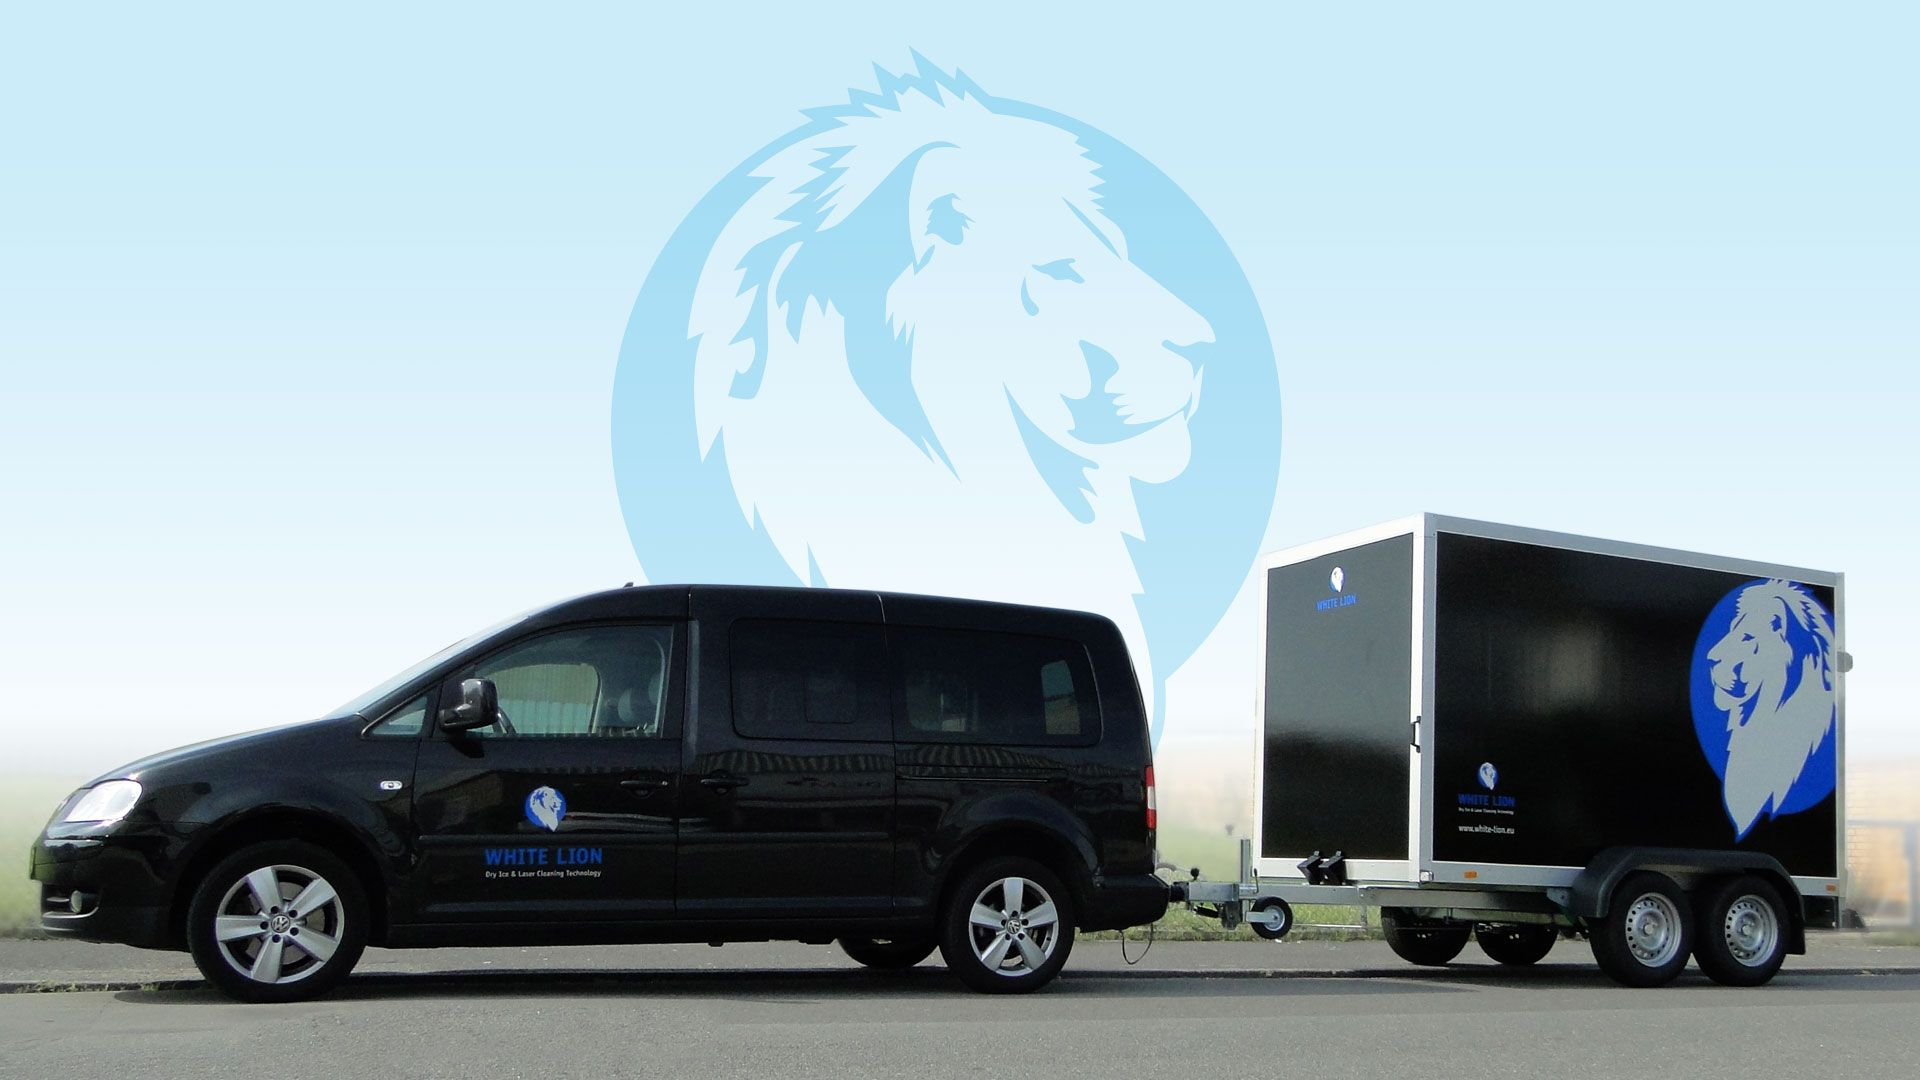 With our fleet of team vehicles, we can deploy our dry ice blasting equipment on site.